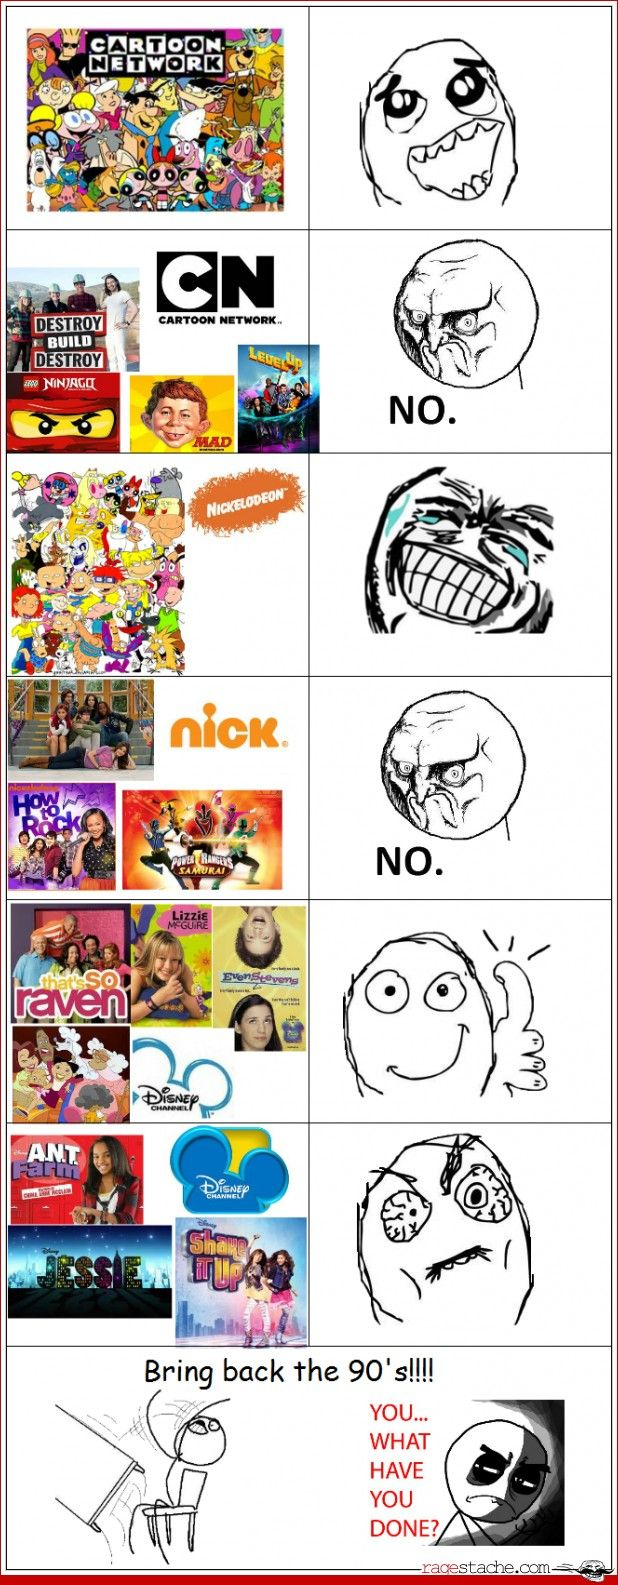 For the most part I agree, especially for Disney and Cartoon Network.